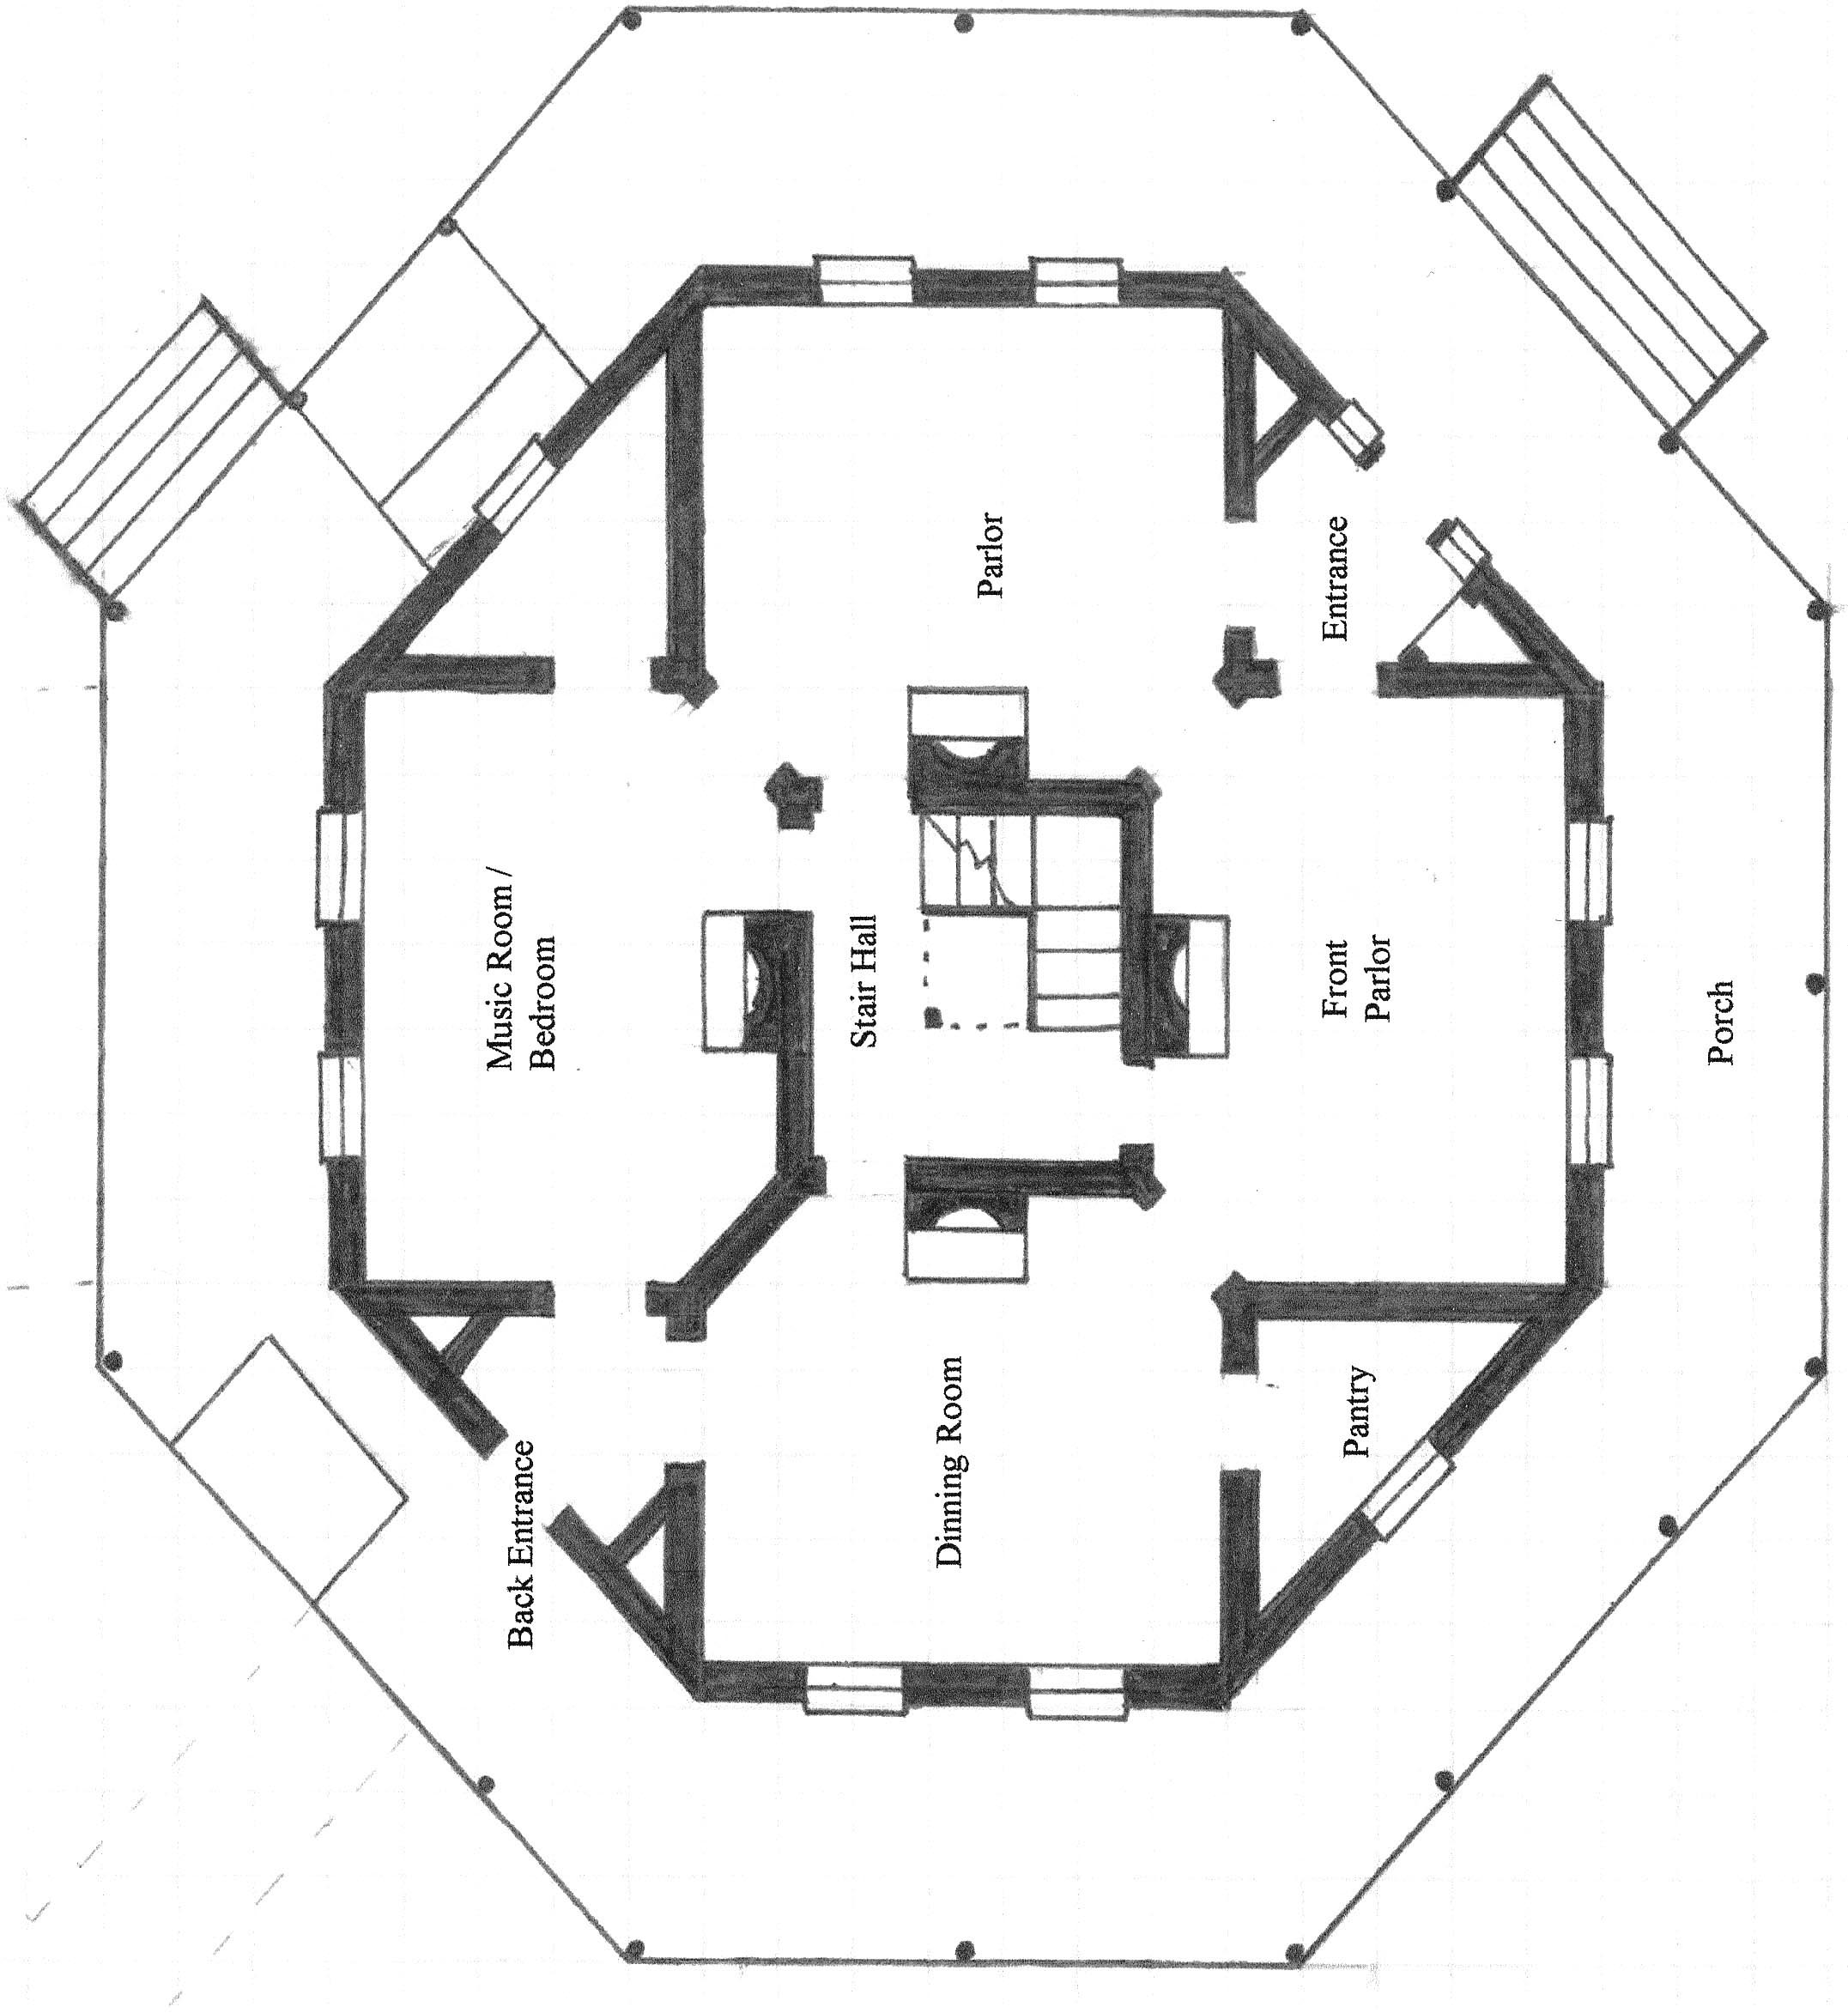 Octagon house encyclopedia of alabama for Octagon house floor plans